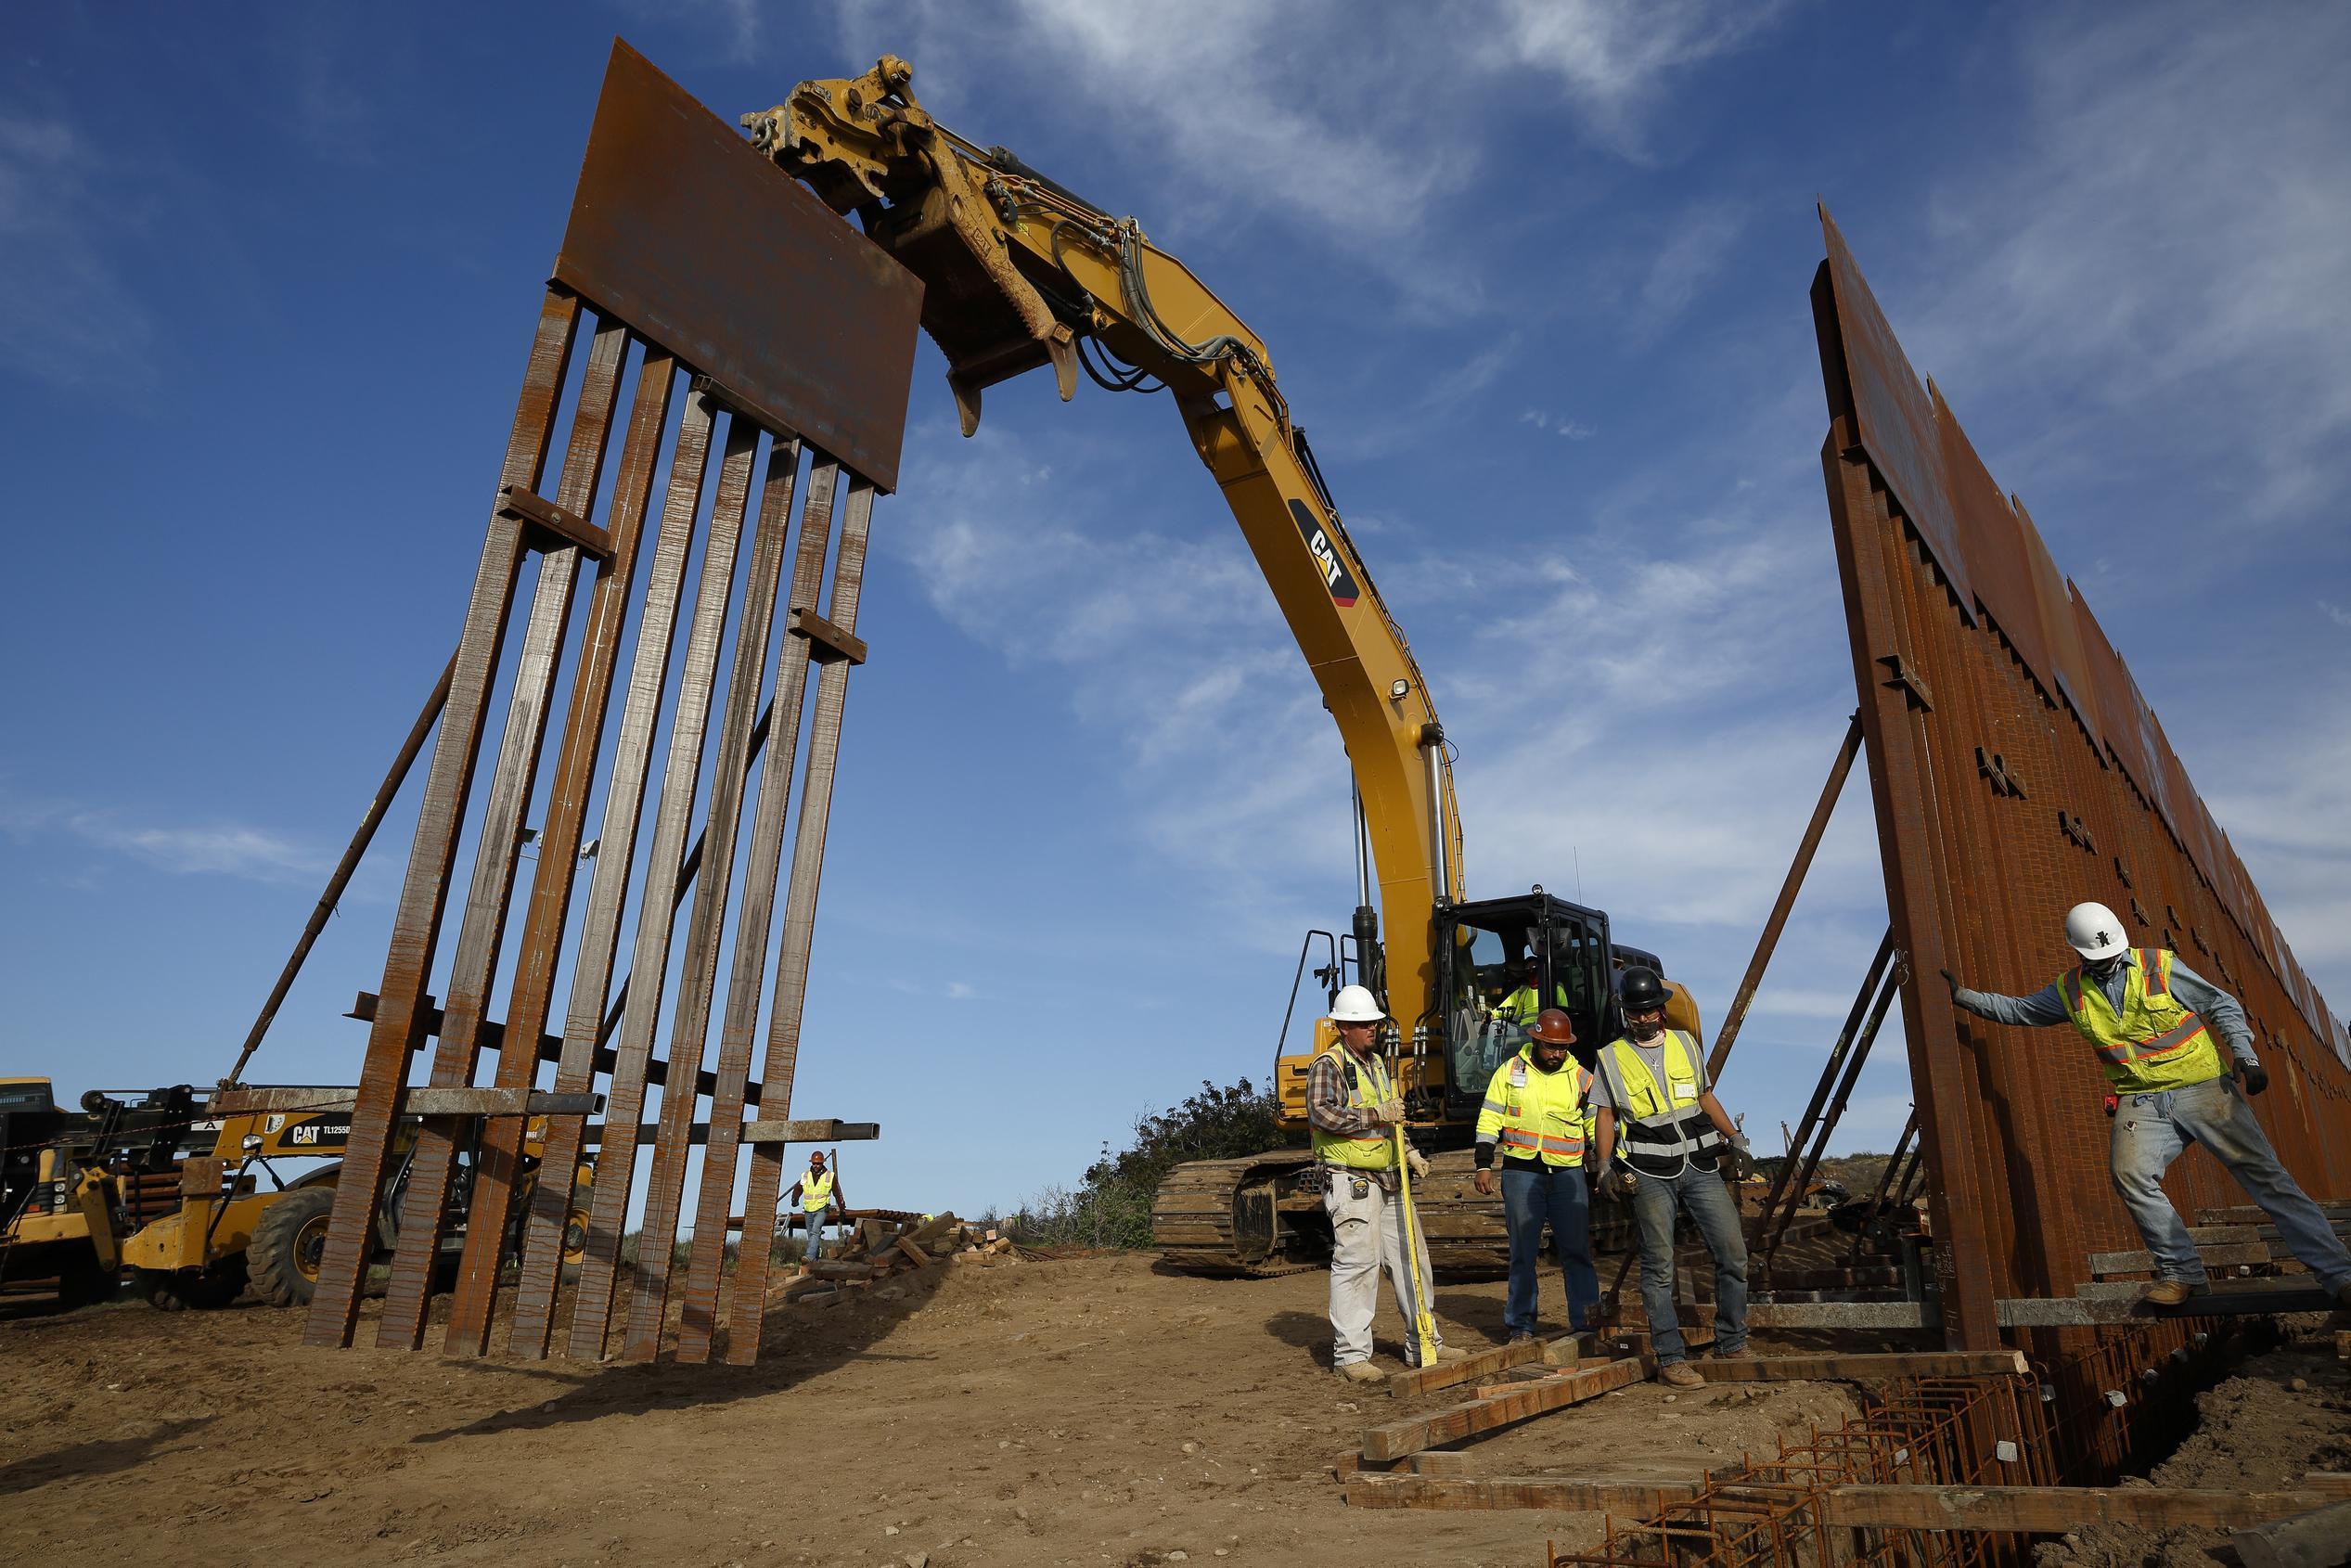 Pentagon lays out $6.8B of projects to cut for Trump border wall